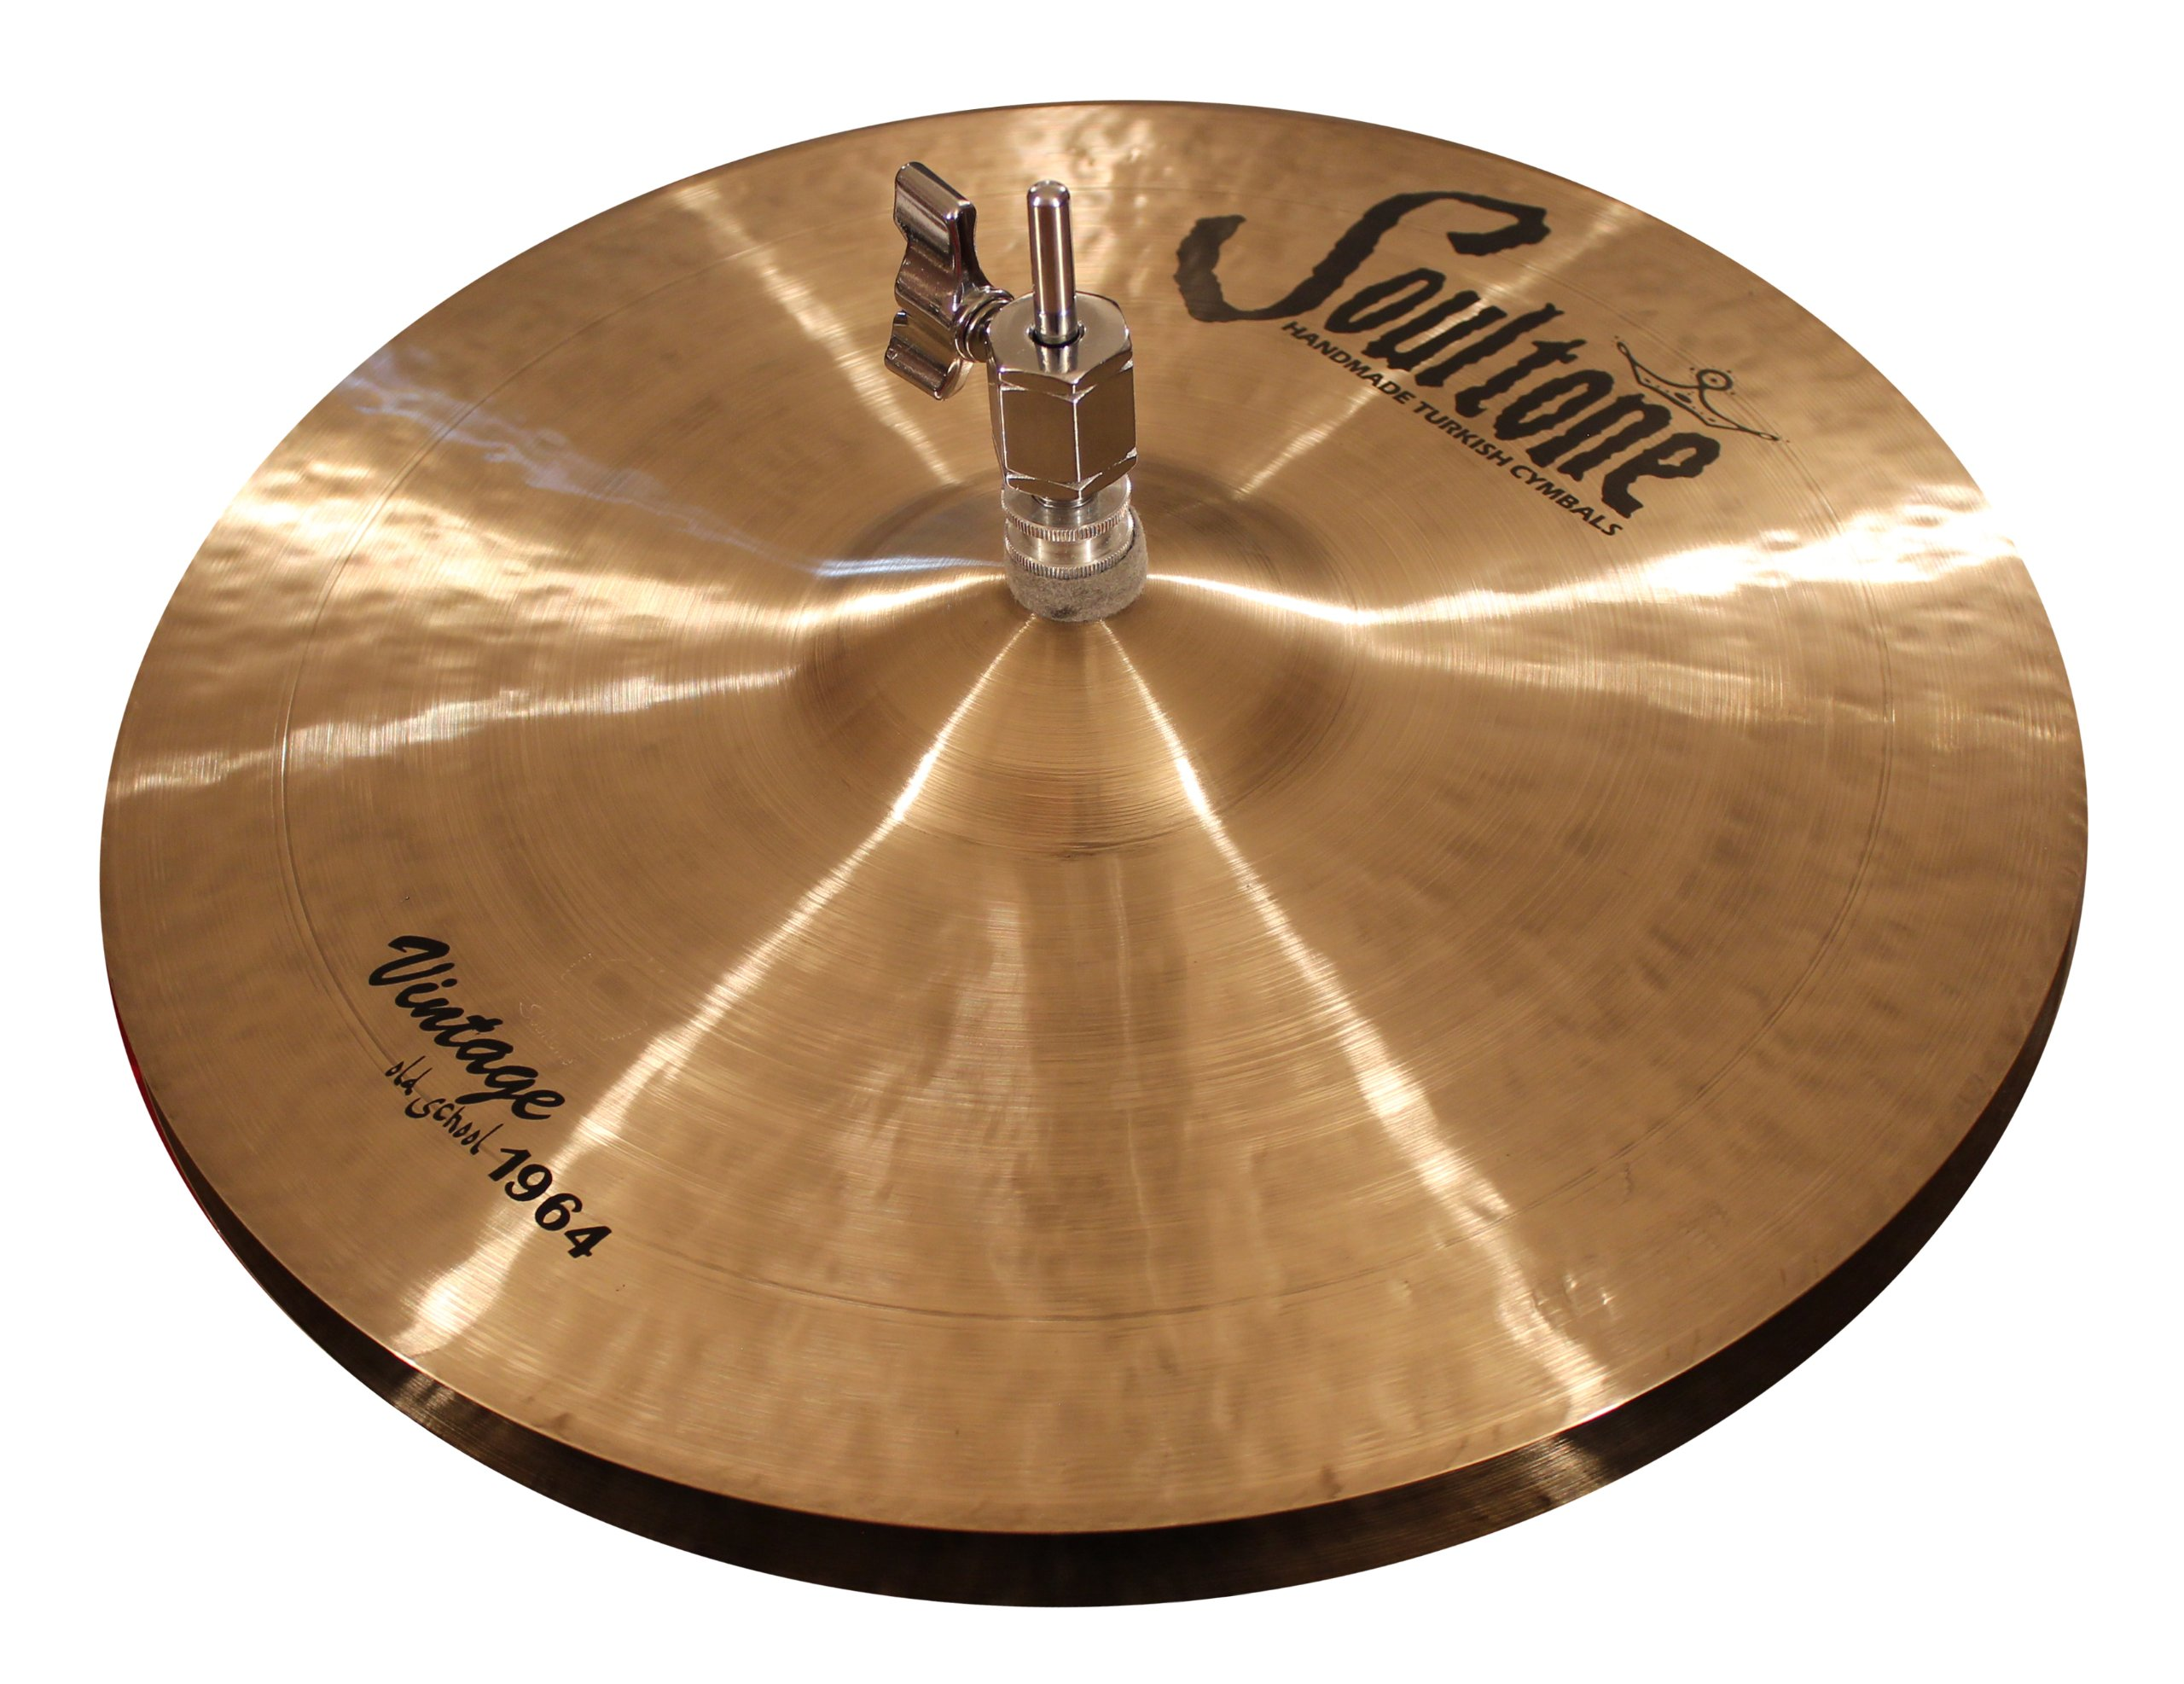 Soultone Cymbals VOS64-HHTB15-15'' Vintage Old School 1964 Hi Hat Bottom Only by Soultone Cymbals